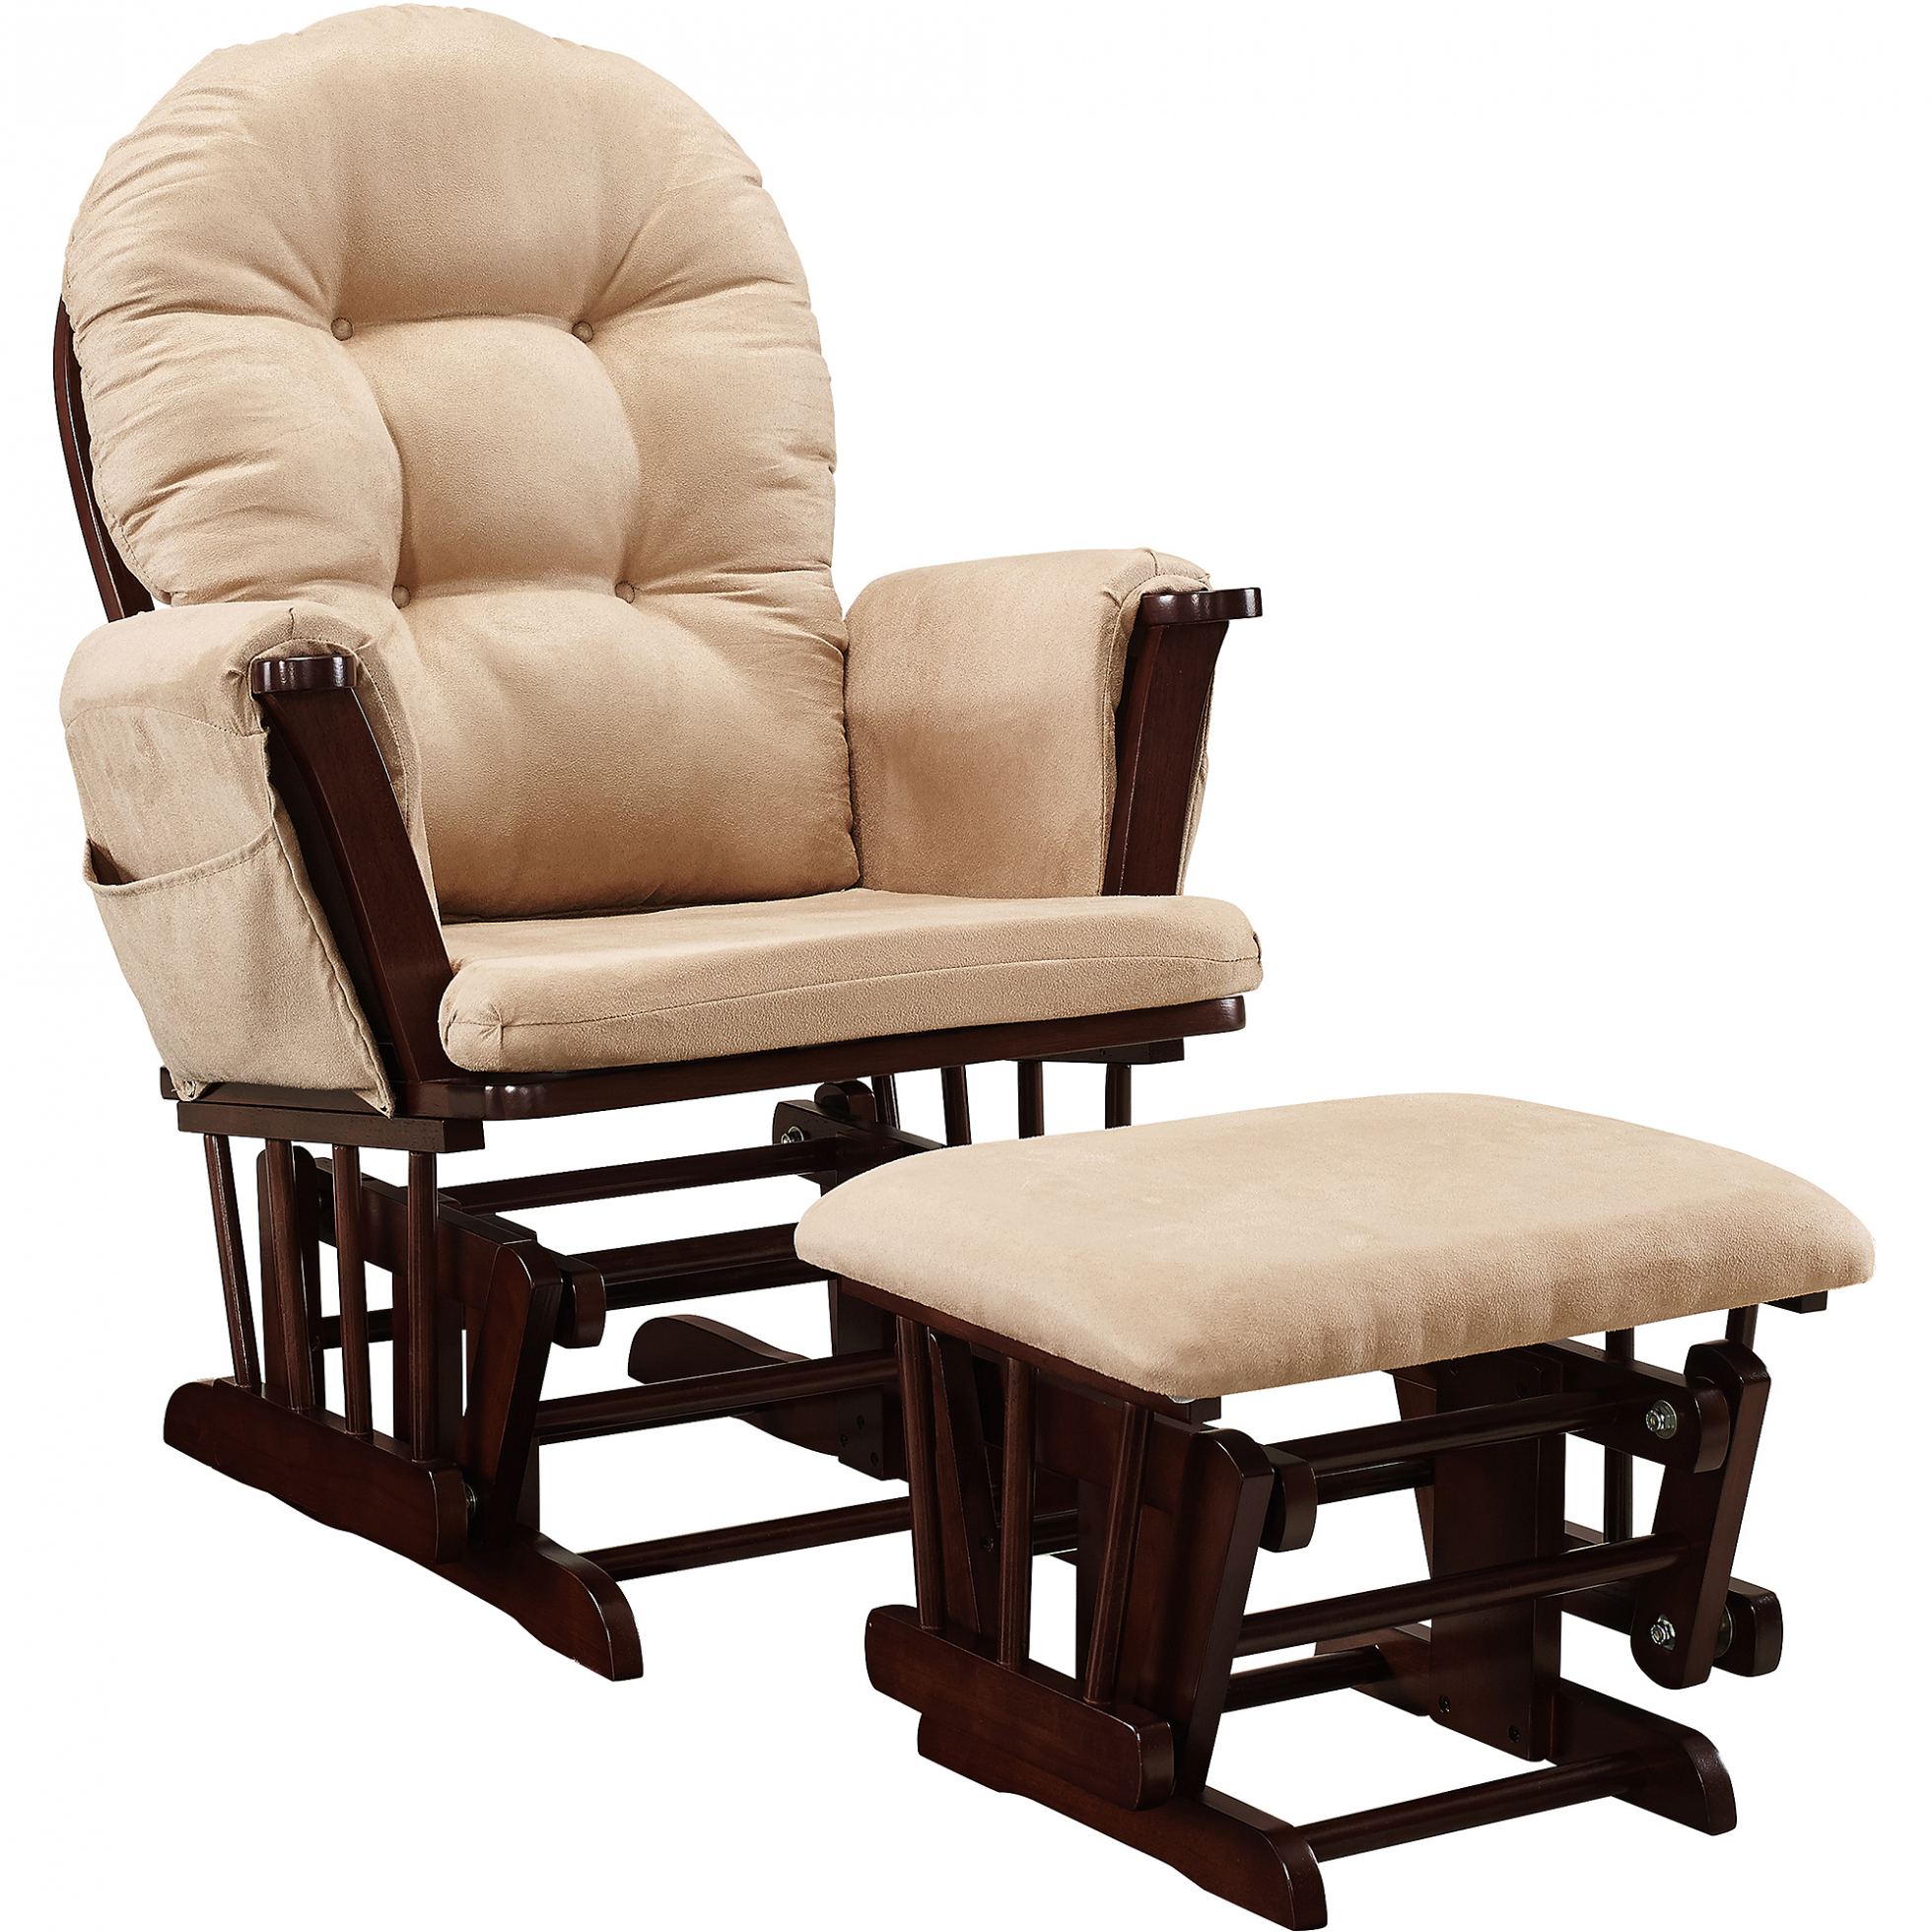 Chairs: Baby Relax Abby Rocker Gray Walmart Inside Entrancing Within Abbey Swivel Glider Recliners (View 17 of 25)